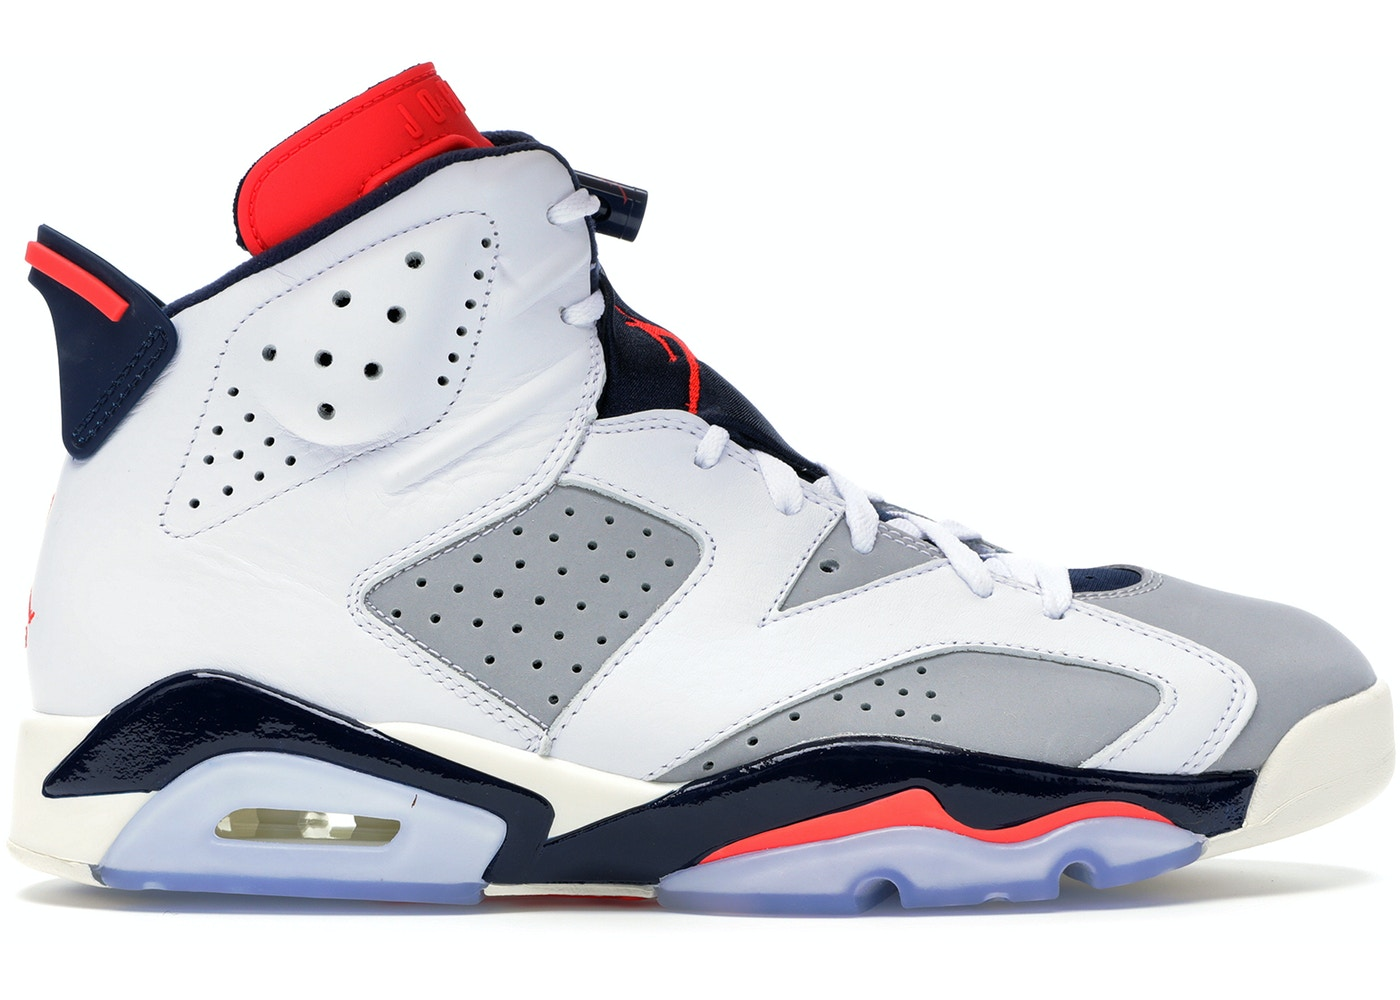 detailed look c9aec 7c801 Jordan 6 Retro Tinker - 384664-104